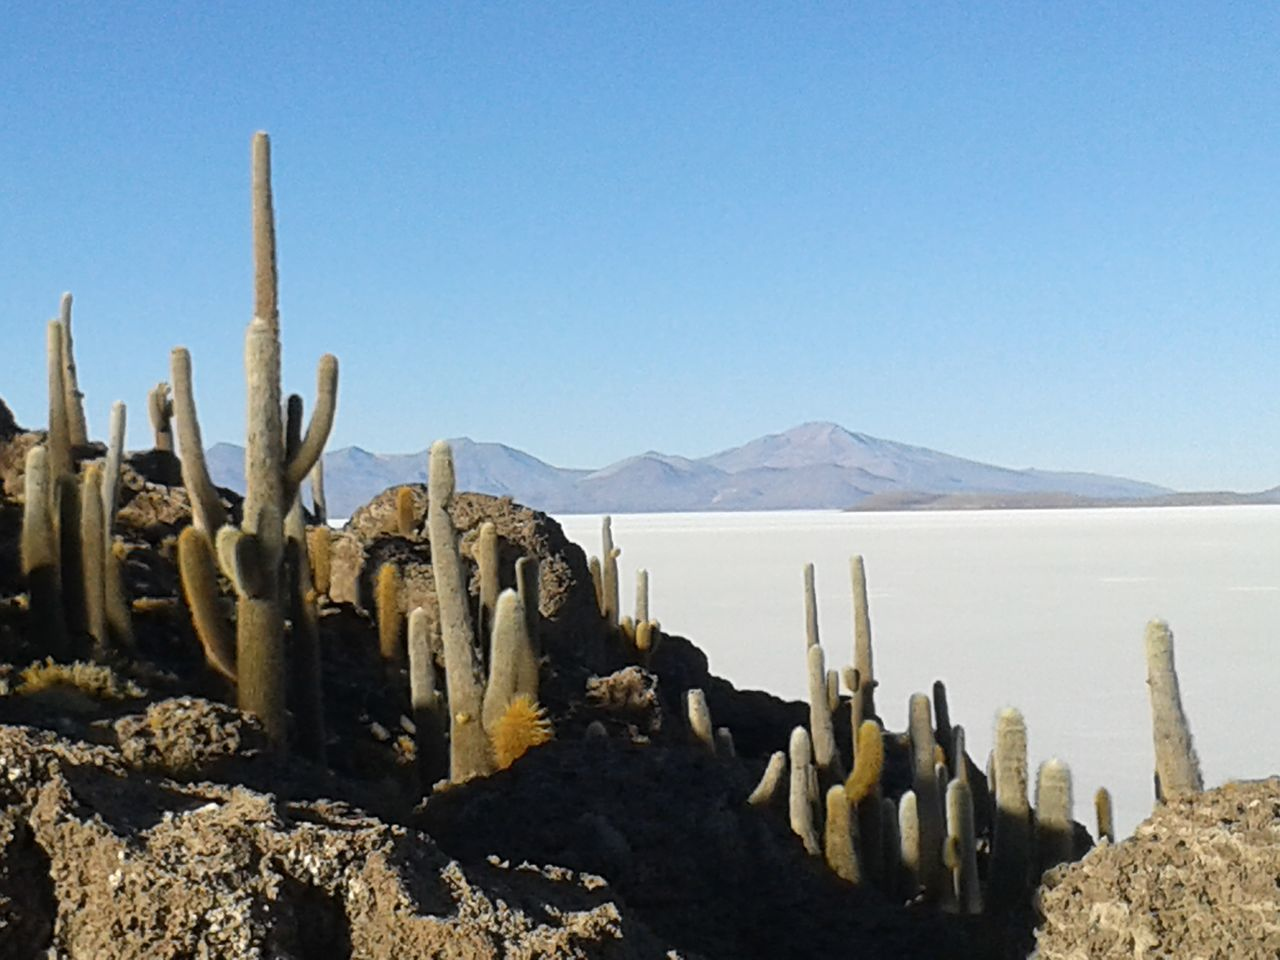 Arid Climate Beauty In Nature Blue Cactus Clear Sky Day Landscape Mountain Nature No People Non-urban Scene Outdoors Rock - Object Salt Flat Scenics Sky Tranquil Scene Tranquility Wilderness Area